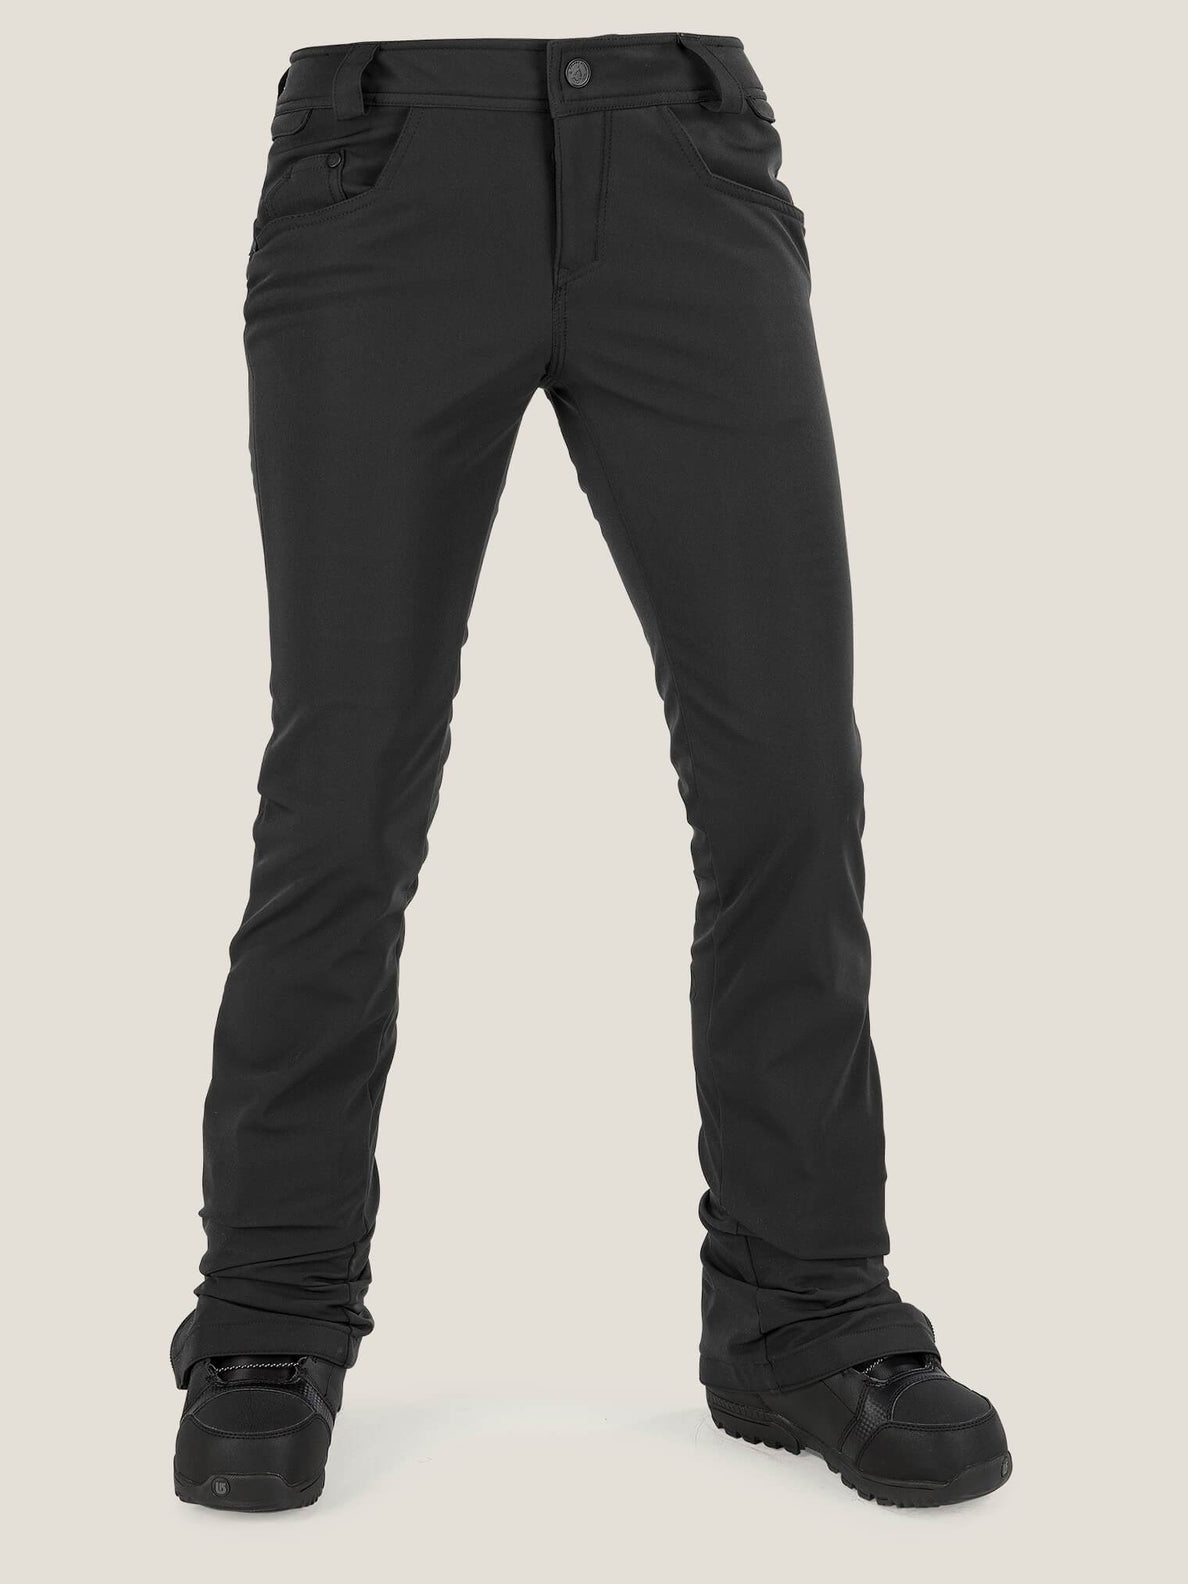 Battle Stretch Pant In Black, Front View